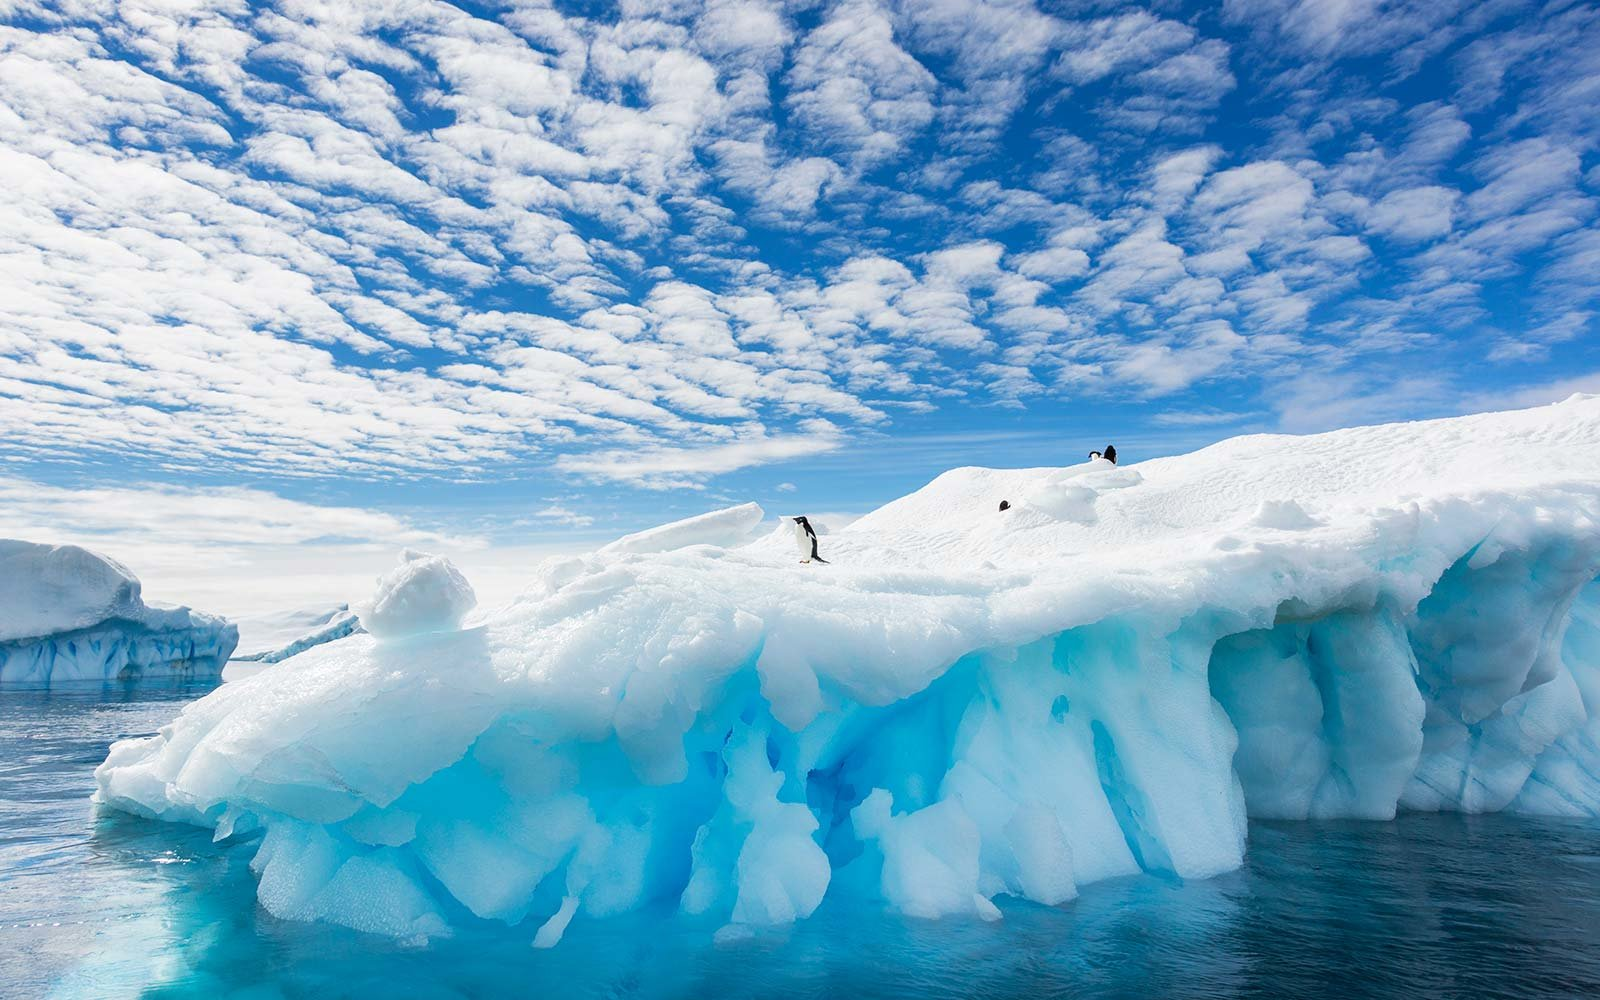 Cloud patterns over an iceberg in Antarctica penguins